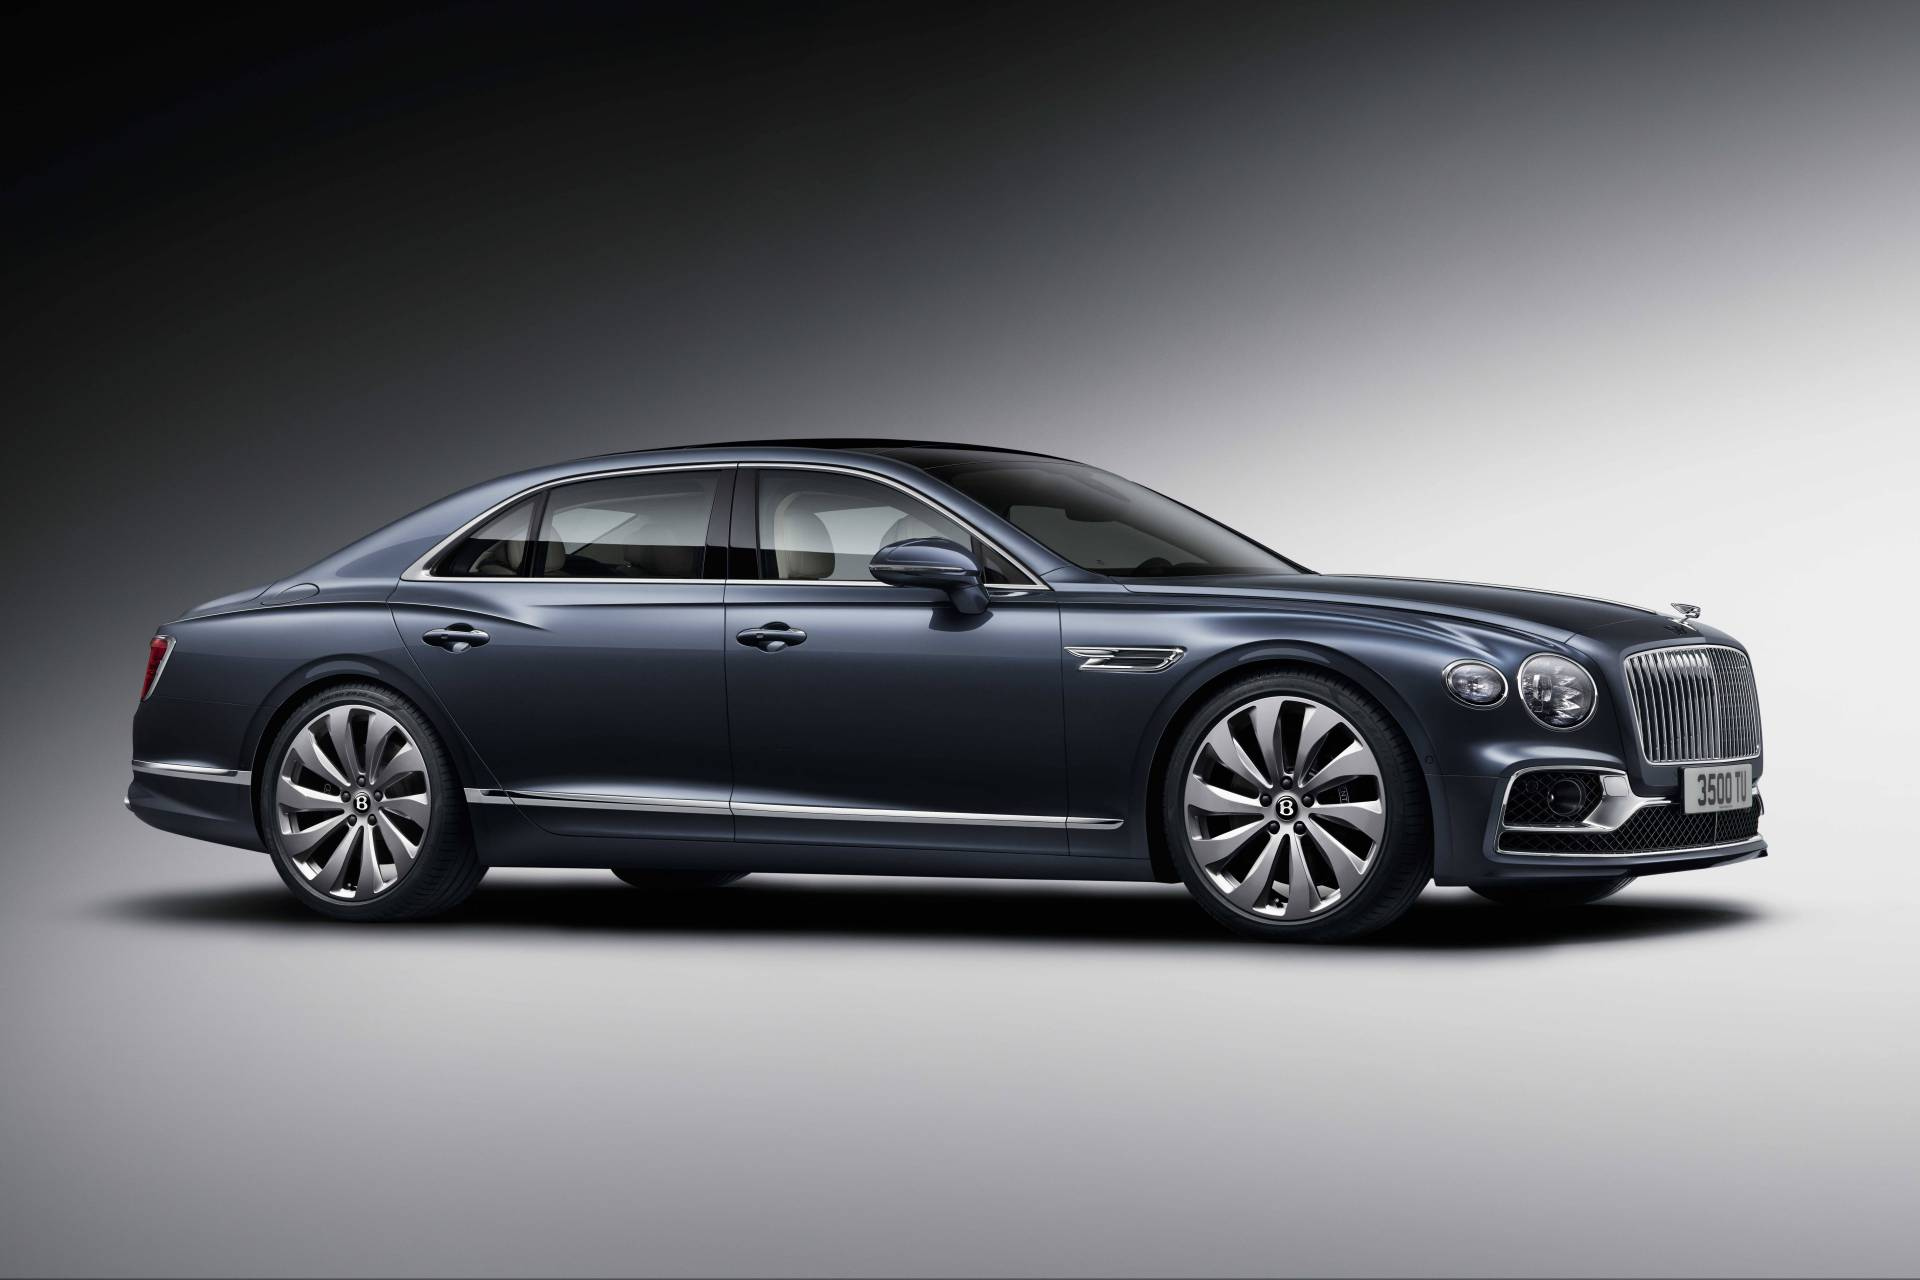 b0e25157-2020-bentley-flying-spur-2